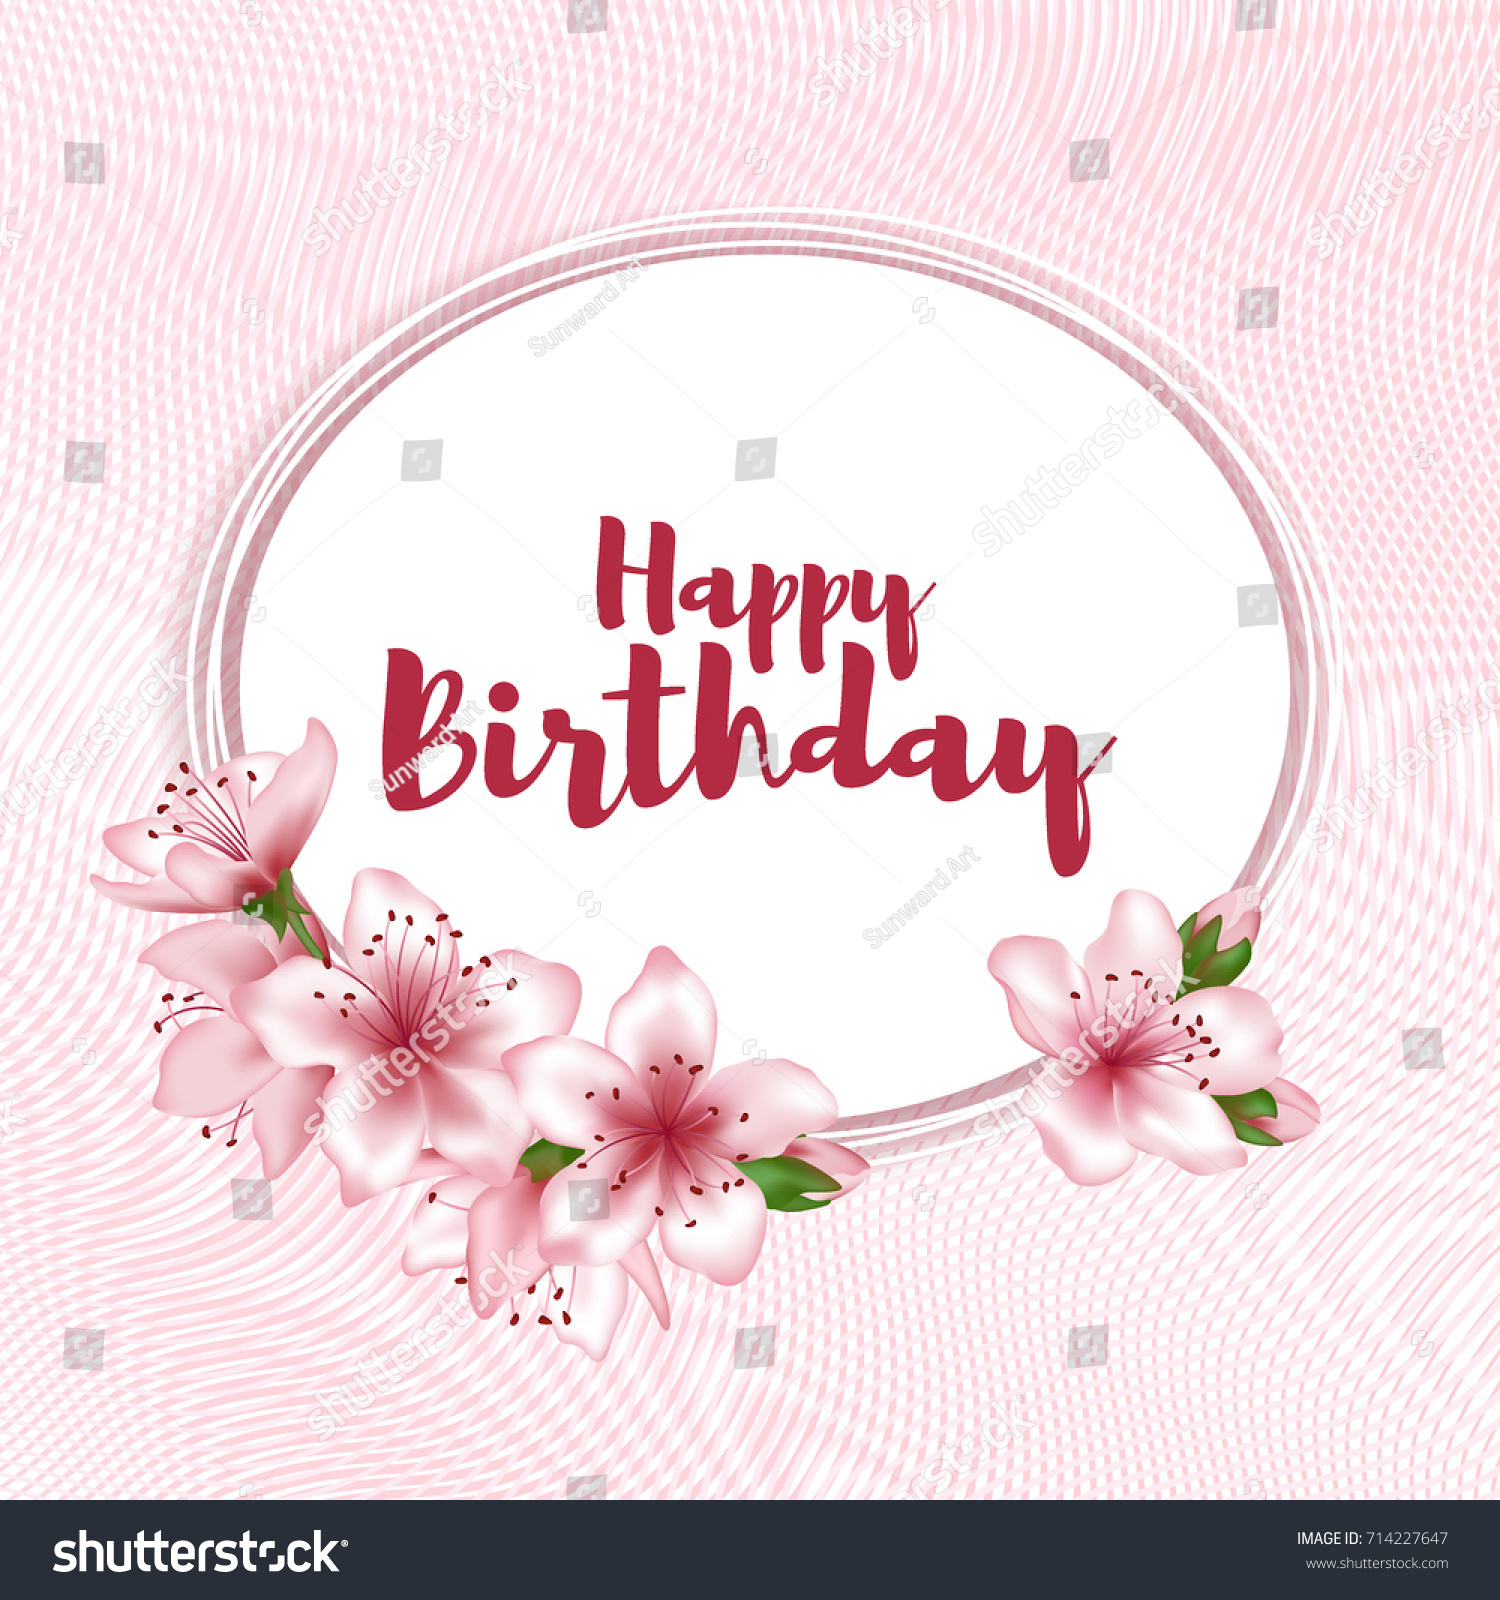 Holiday oval border birthday banner poster with cherry flowers id 714227647 izmirmasajfo